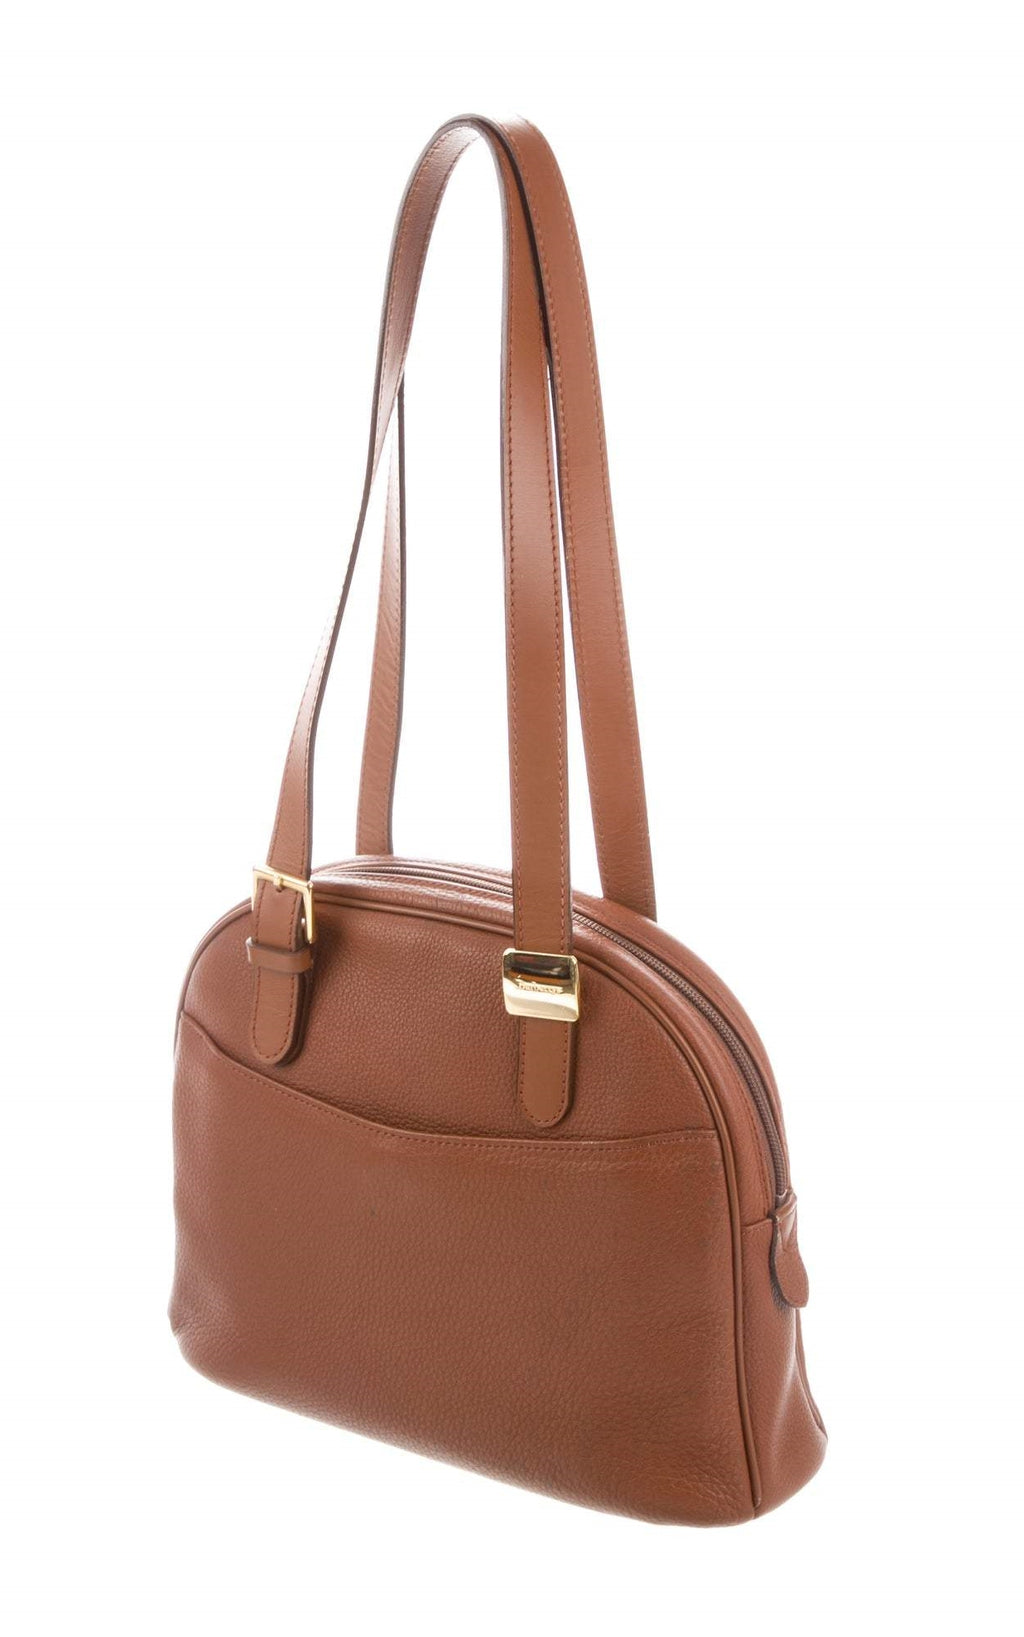 Burberry Vintage Leather Shoulder Bag